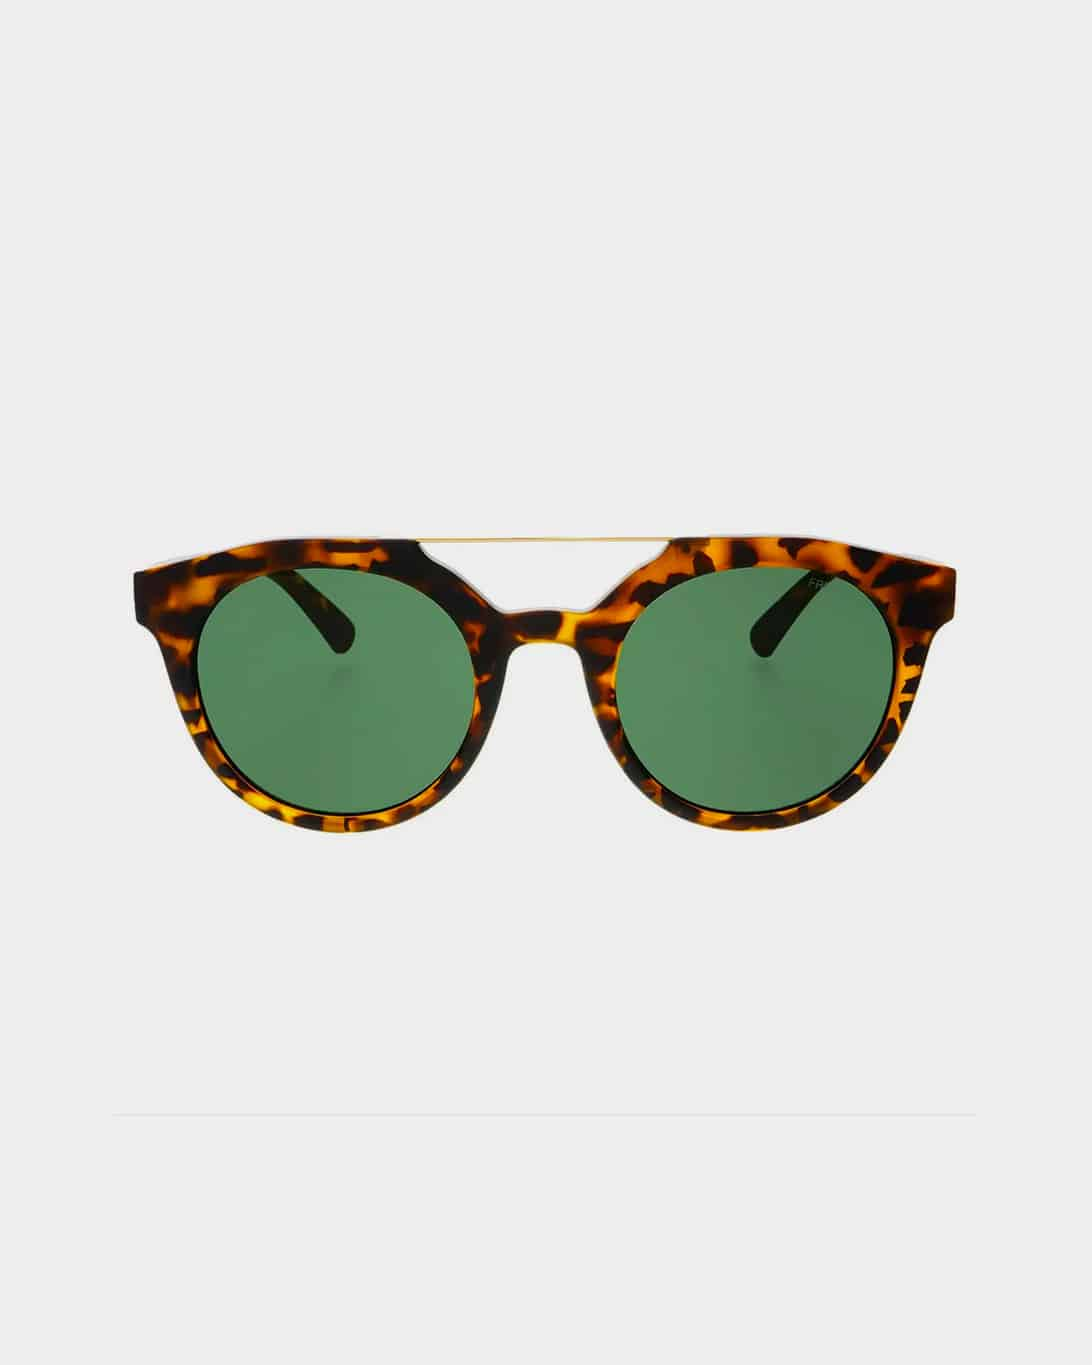 Tortoise framed sunglasses with green lenses